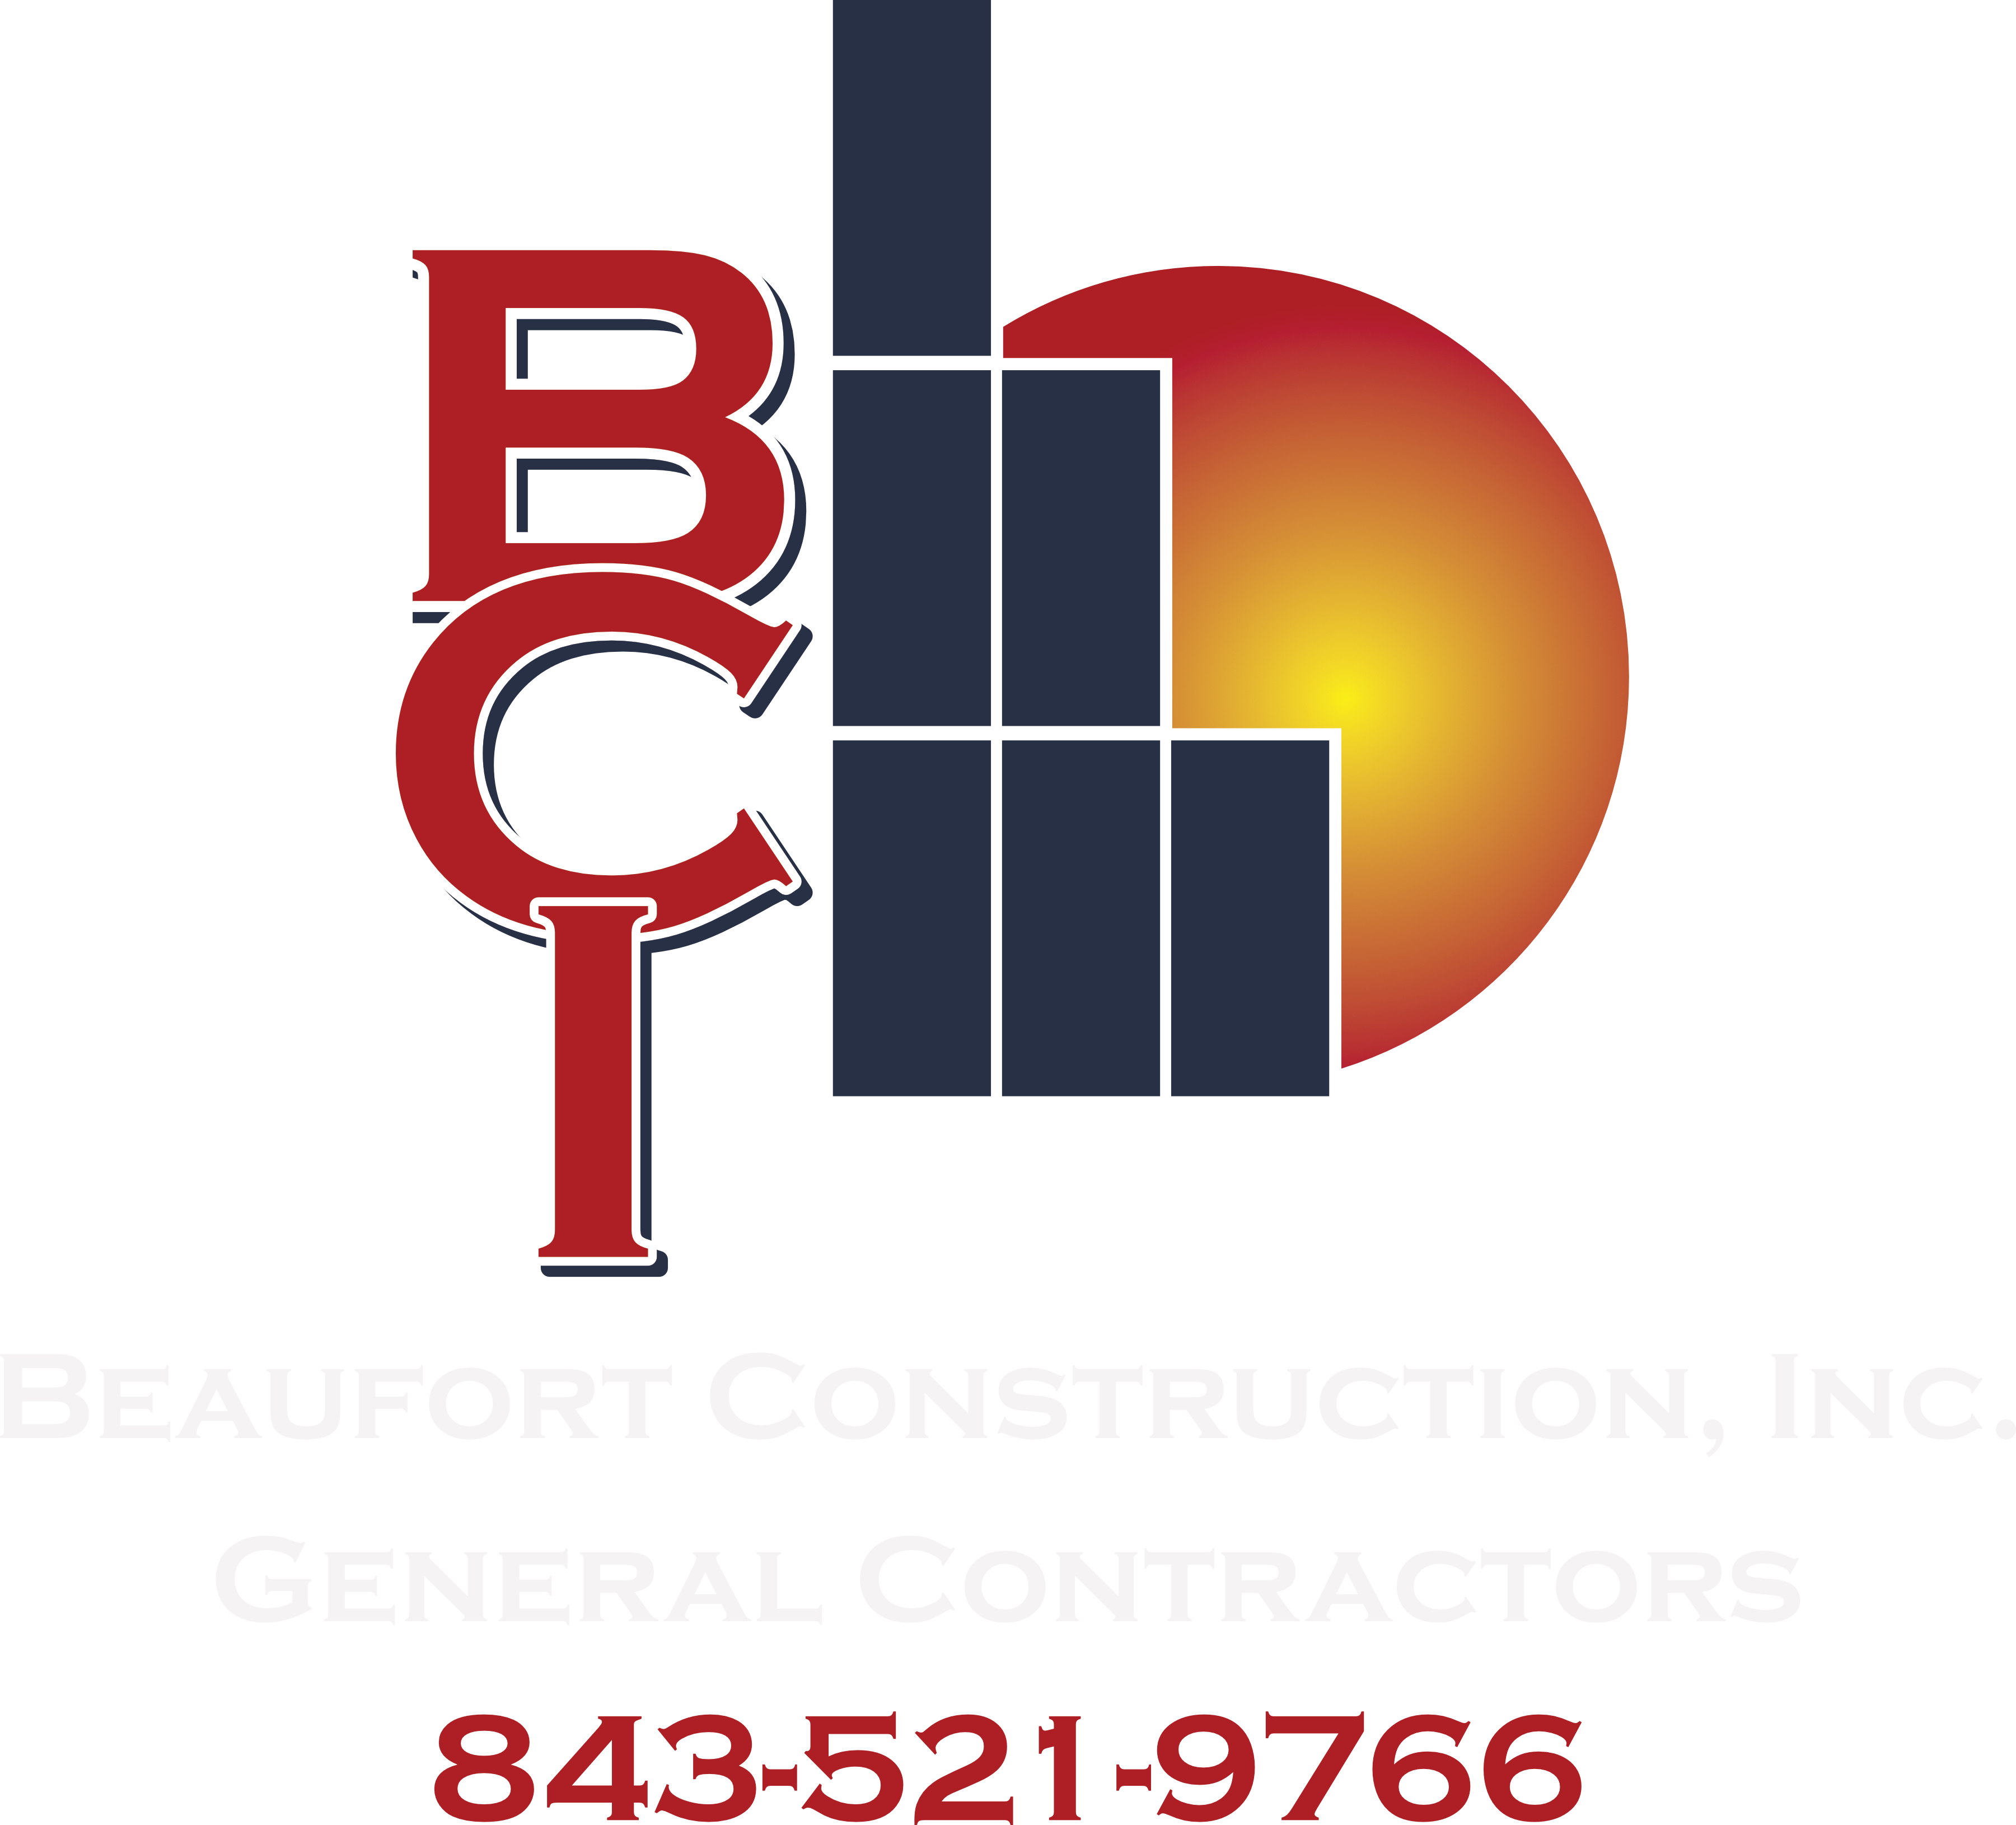 Contractor clipart construction management. About beaufort a heritage